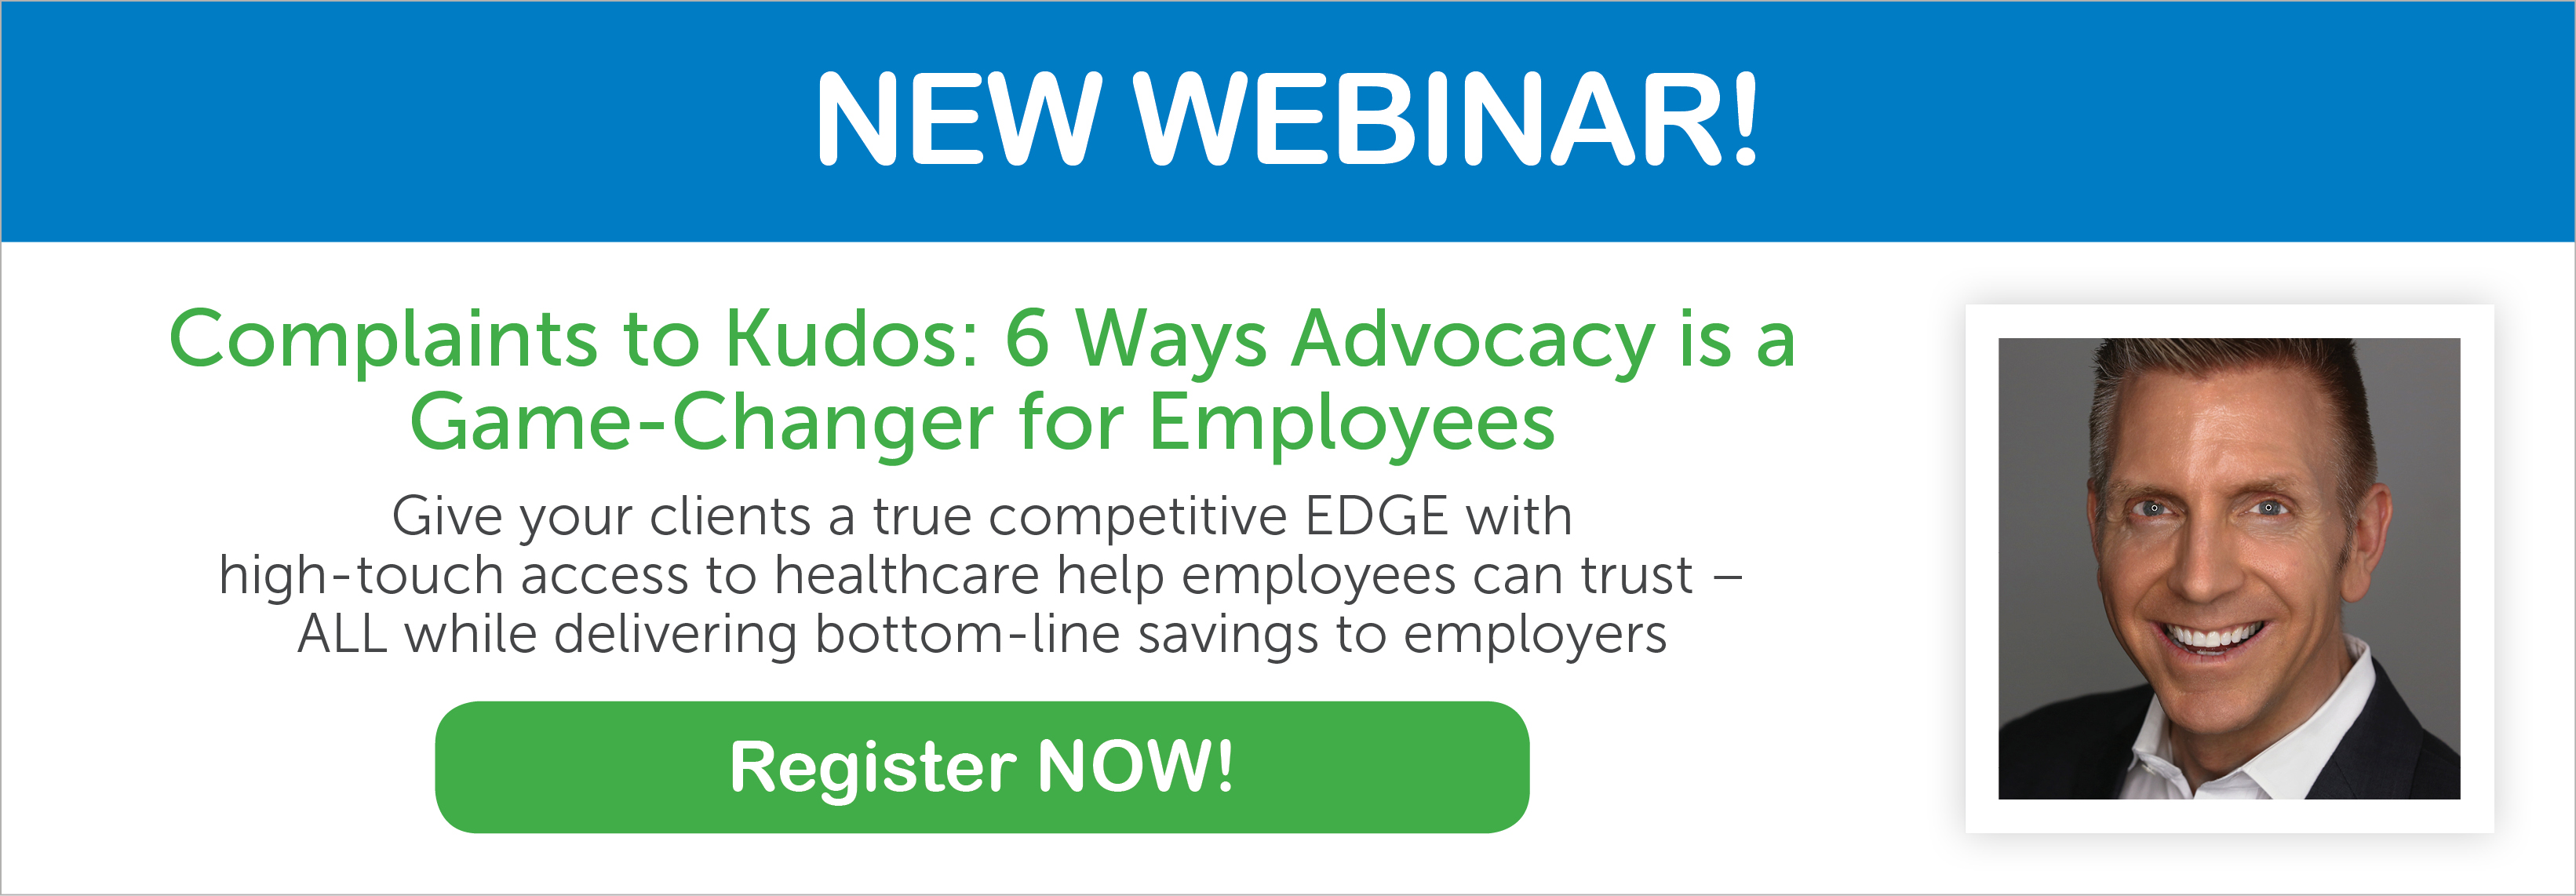 Complaints to Kudos: 6 Ways Advocacy is a Game-Changer for Employees